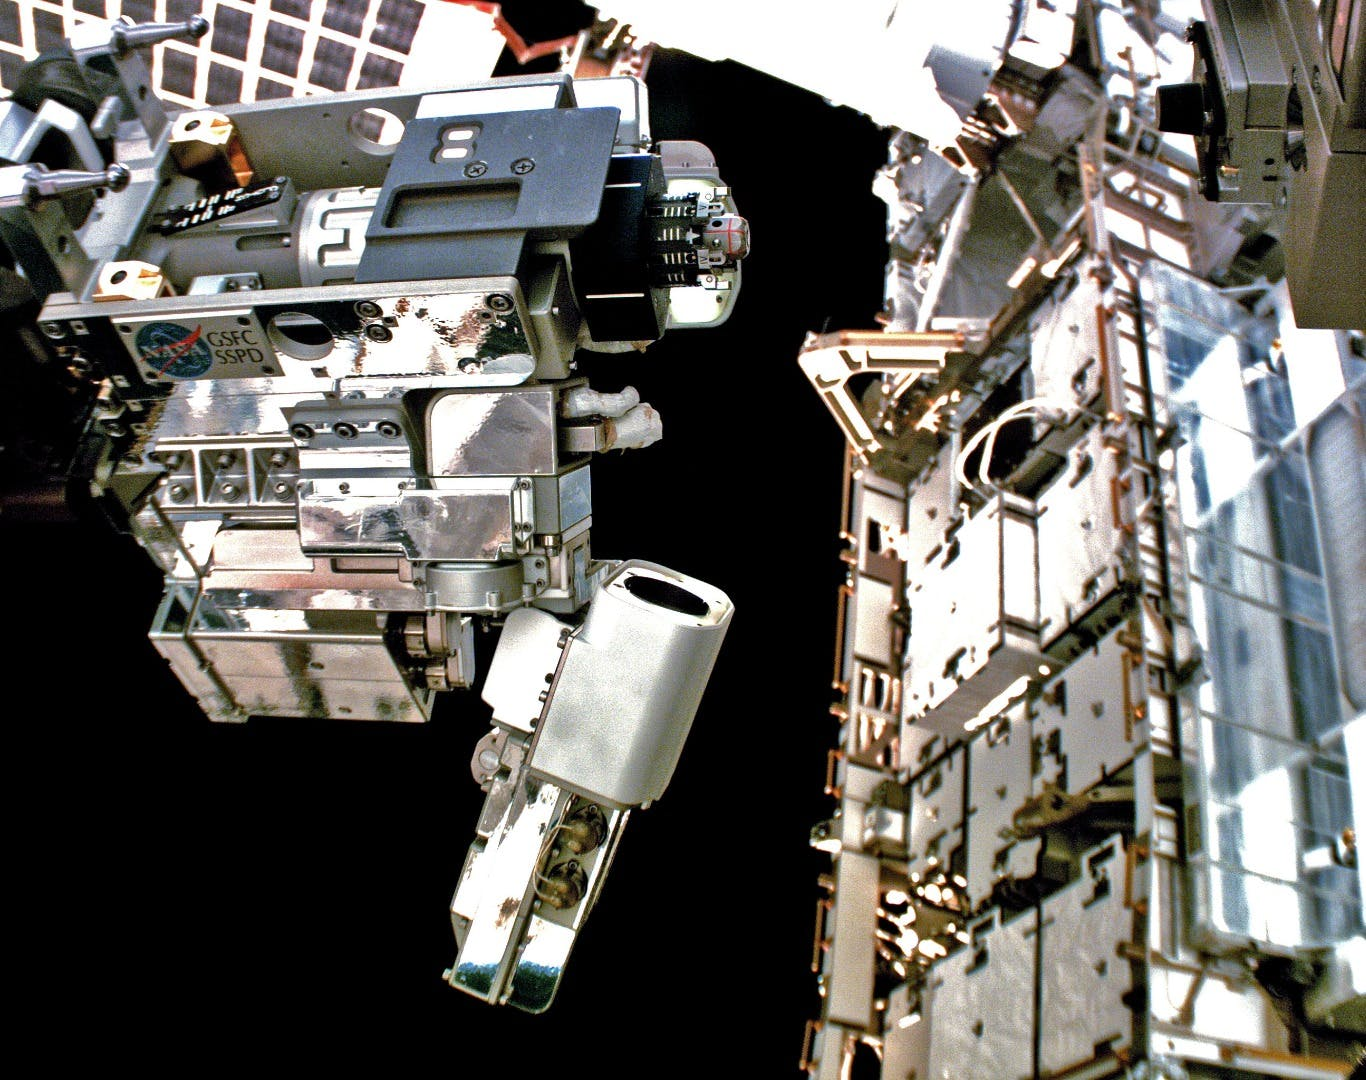 NASA completes tool tests for orbital refueling project